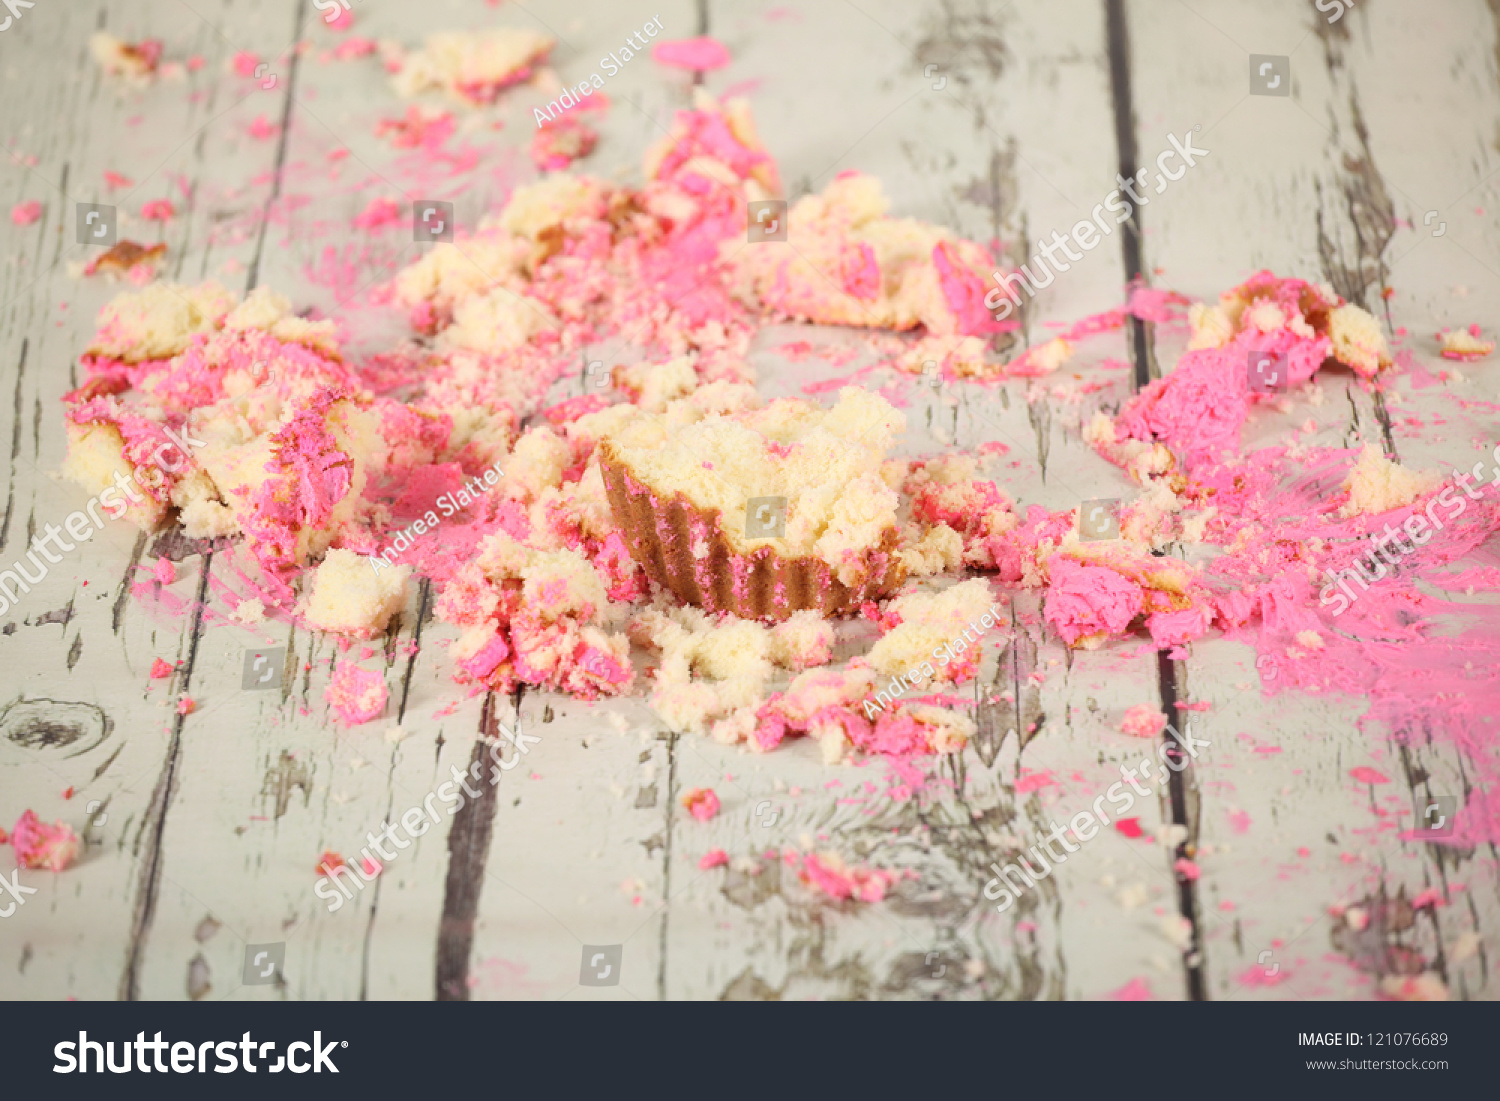 Awe Inspiring Smashed Birthday Cake Taken End Party Stock Photo Edit Now 121076689 Funny Birthday Cards Online Overcheapnameinfo